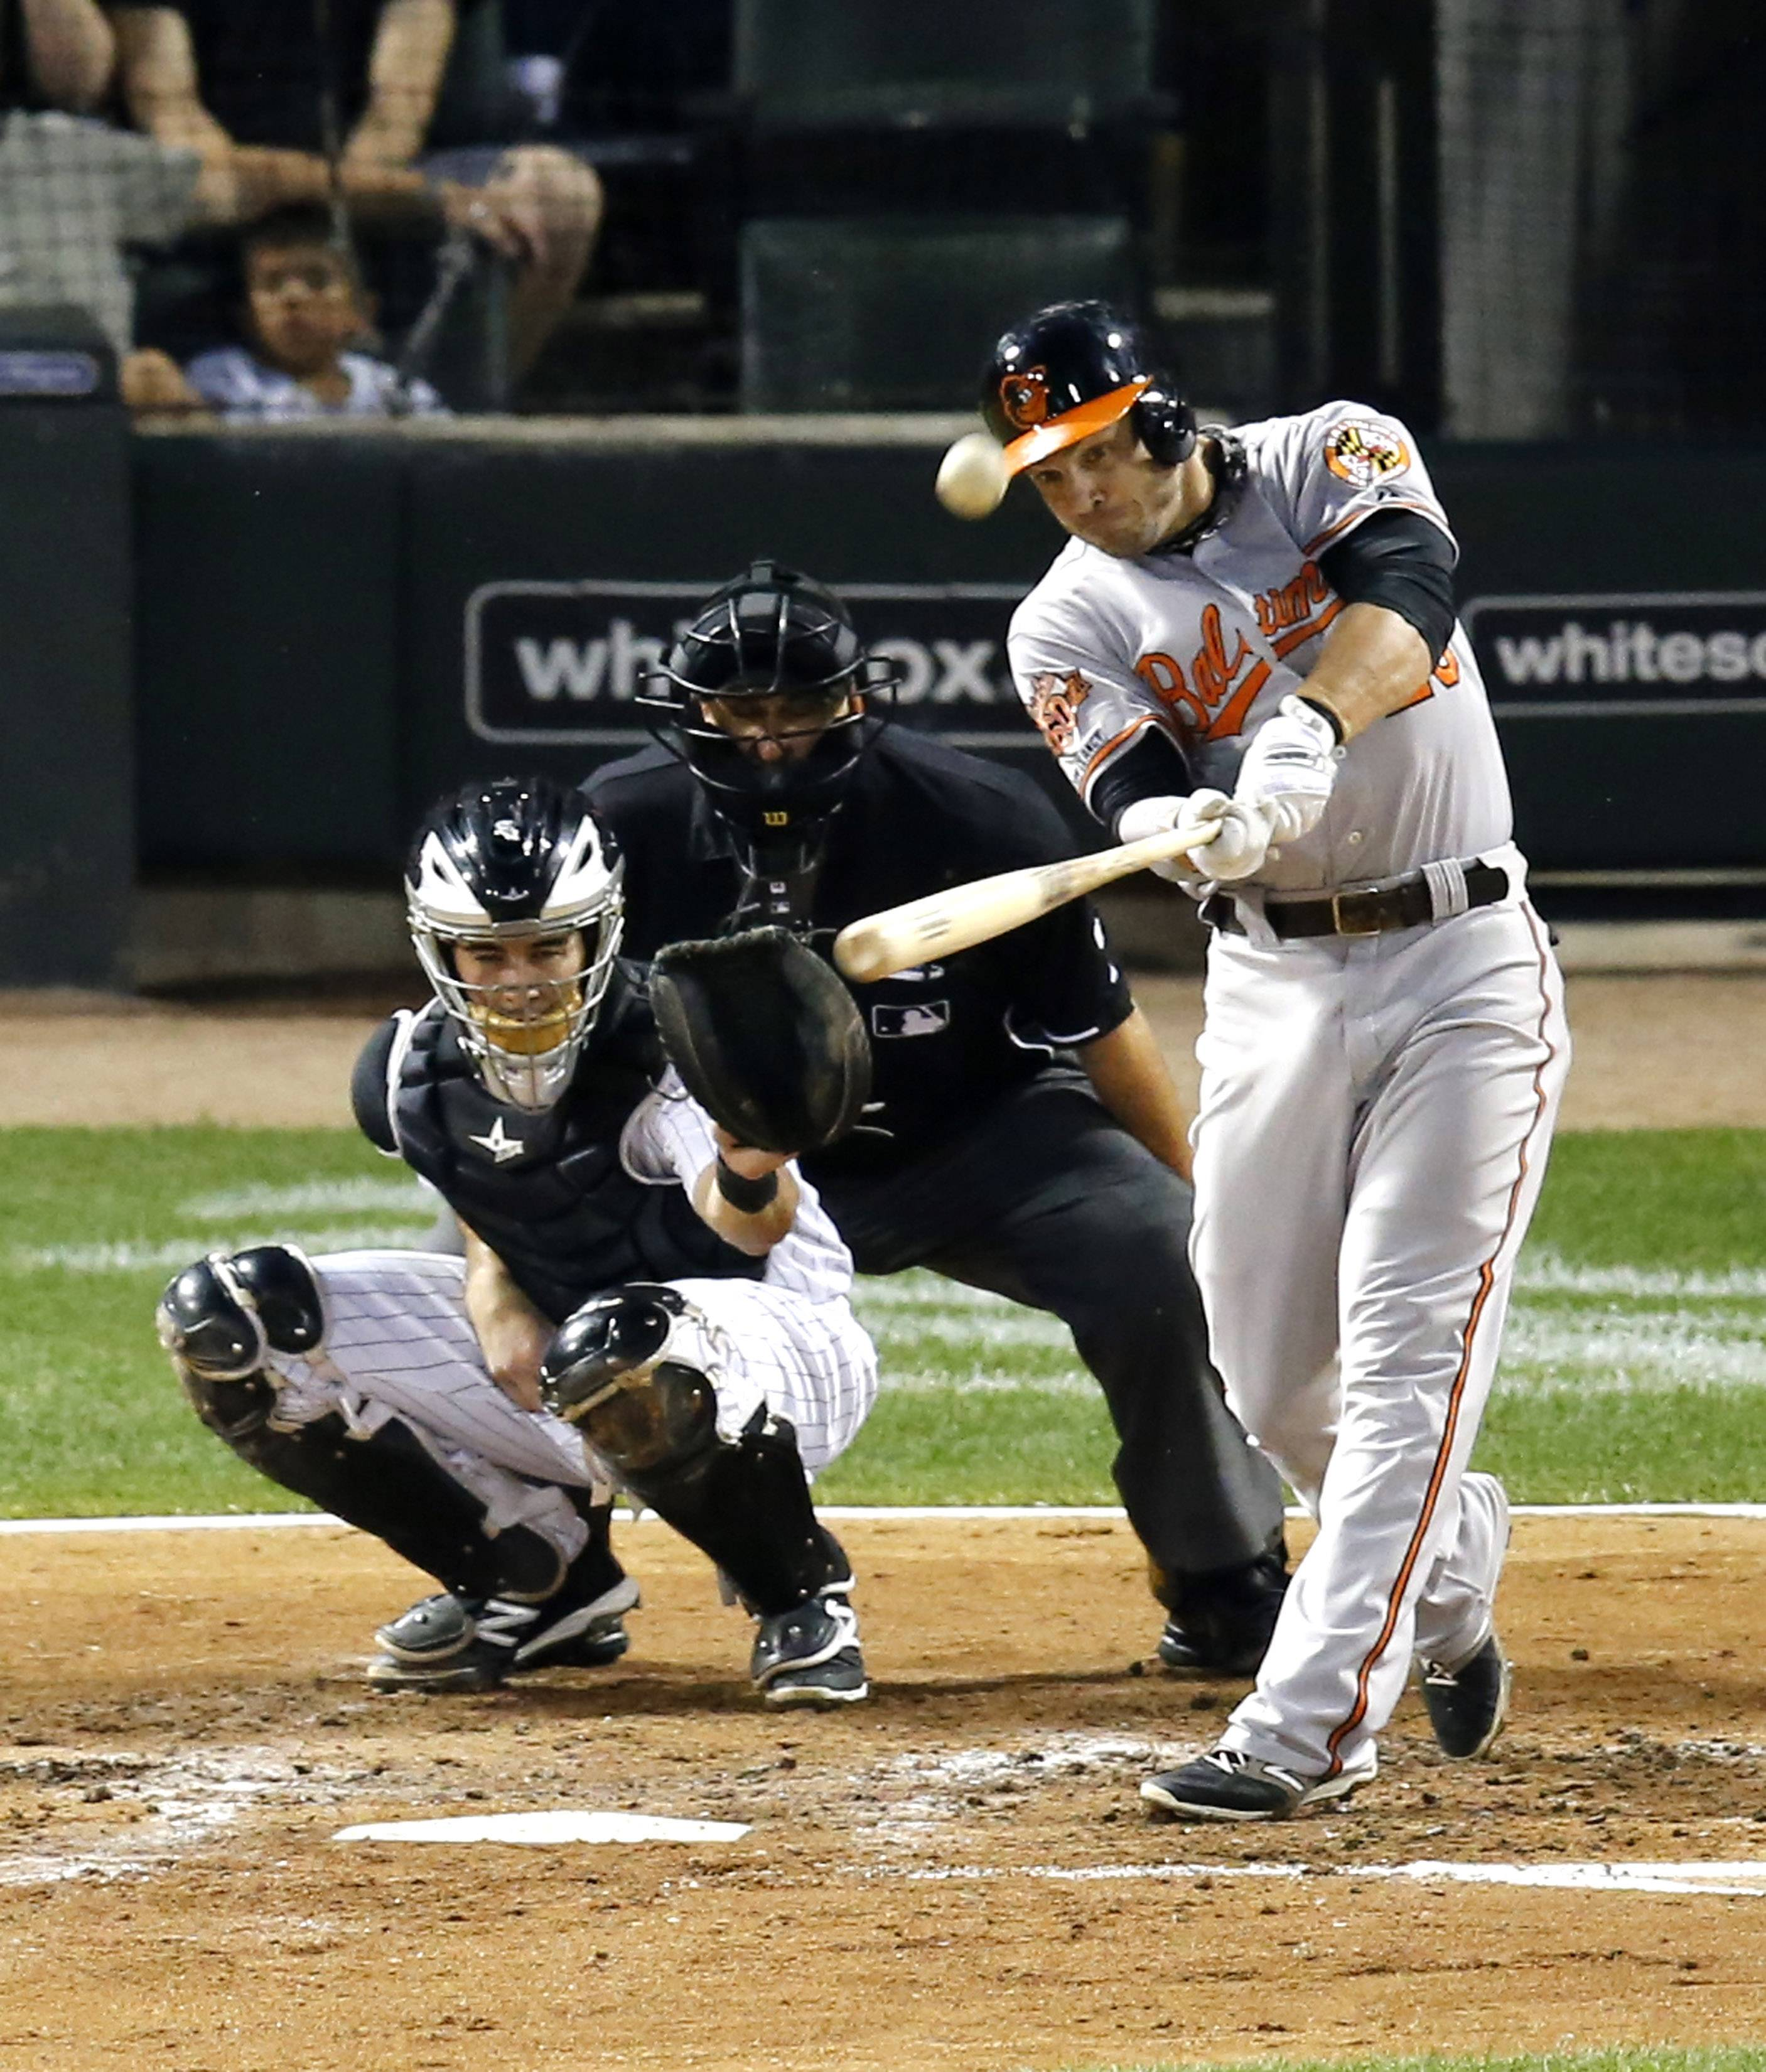 Baltimore Orioles' Steve Pearce hits a home run off Chicago White Sox starting pitcher Hector Noesi, during the fourth inning of a baseball game Wednesday, Aug. 20, 2014, in Chicago. Watching the play behind the plate are catcher Adrian Nieto and umpire Eric Cooper.